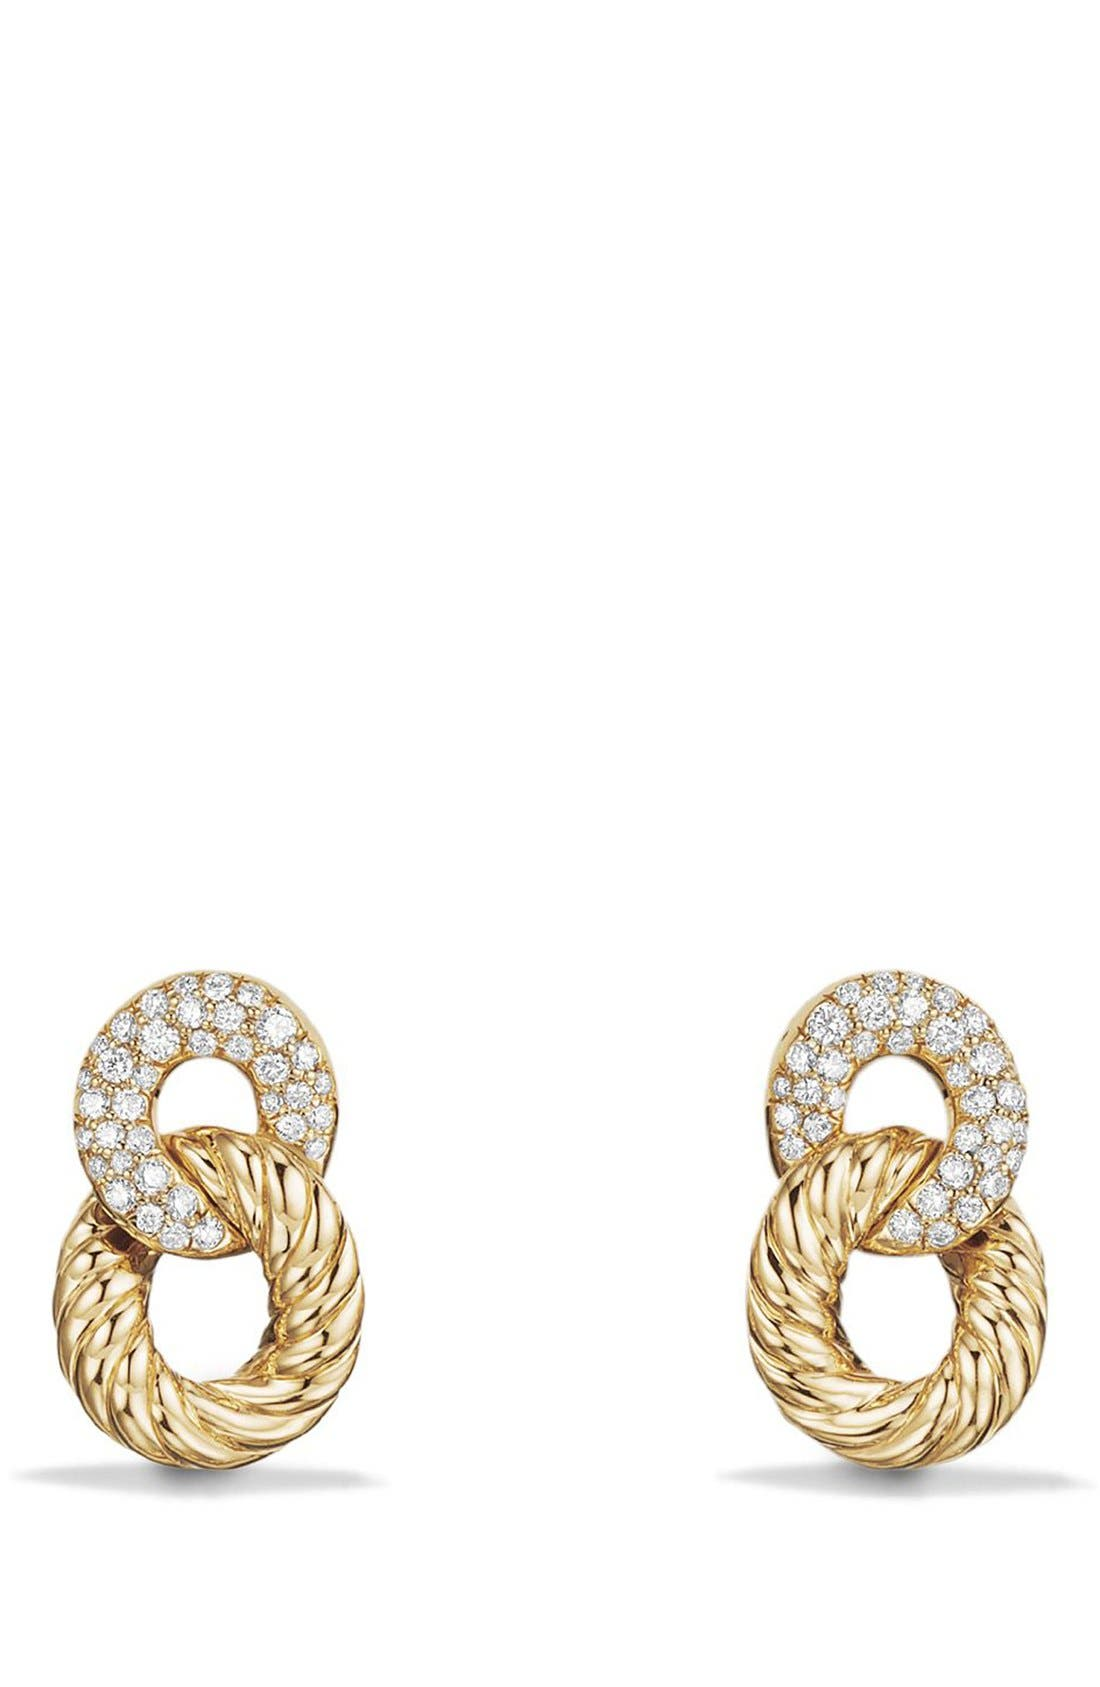 Extra-Small Curb Link Drop Earrings with Diamond in 18K Gold,                         Main,                         color, Yellow Gold/ Diamond